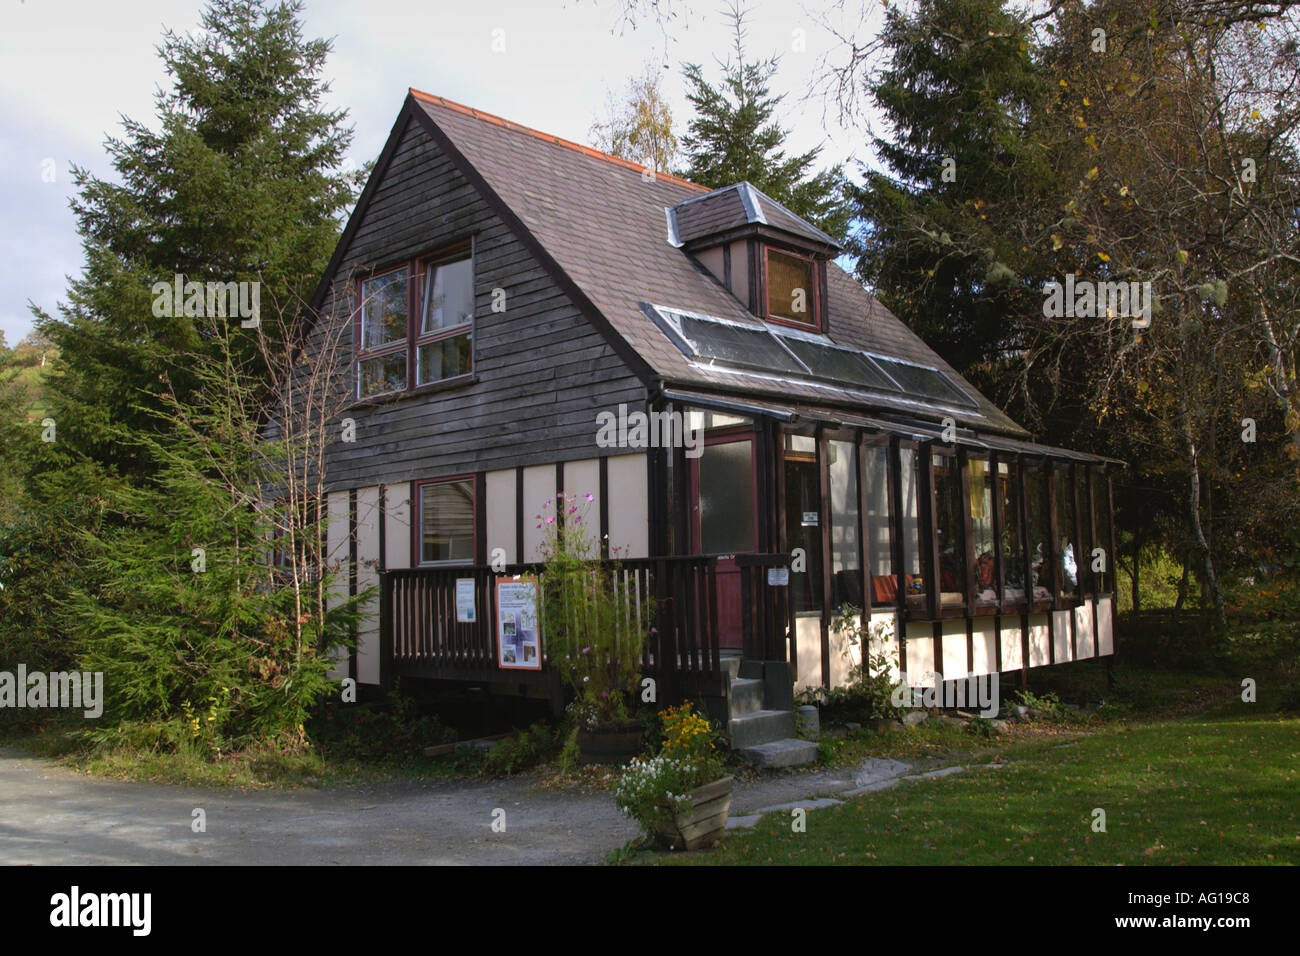 Example of self build house at the Centre for Alternative Technology Machynlleth Powys Mid Wales UK - Stock Image